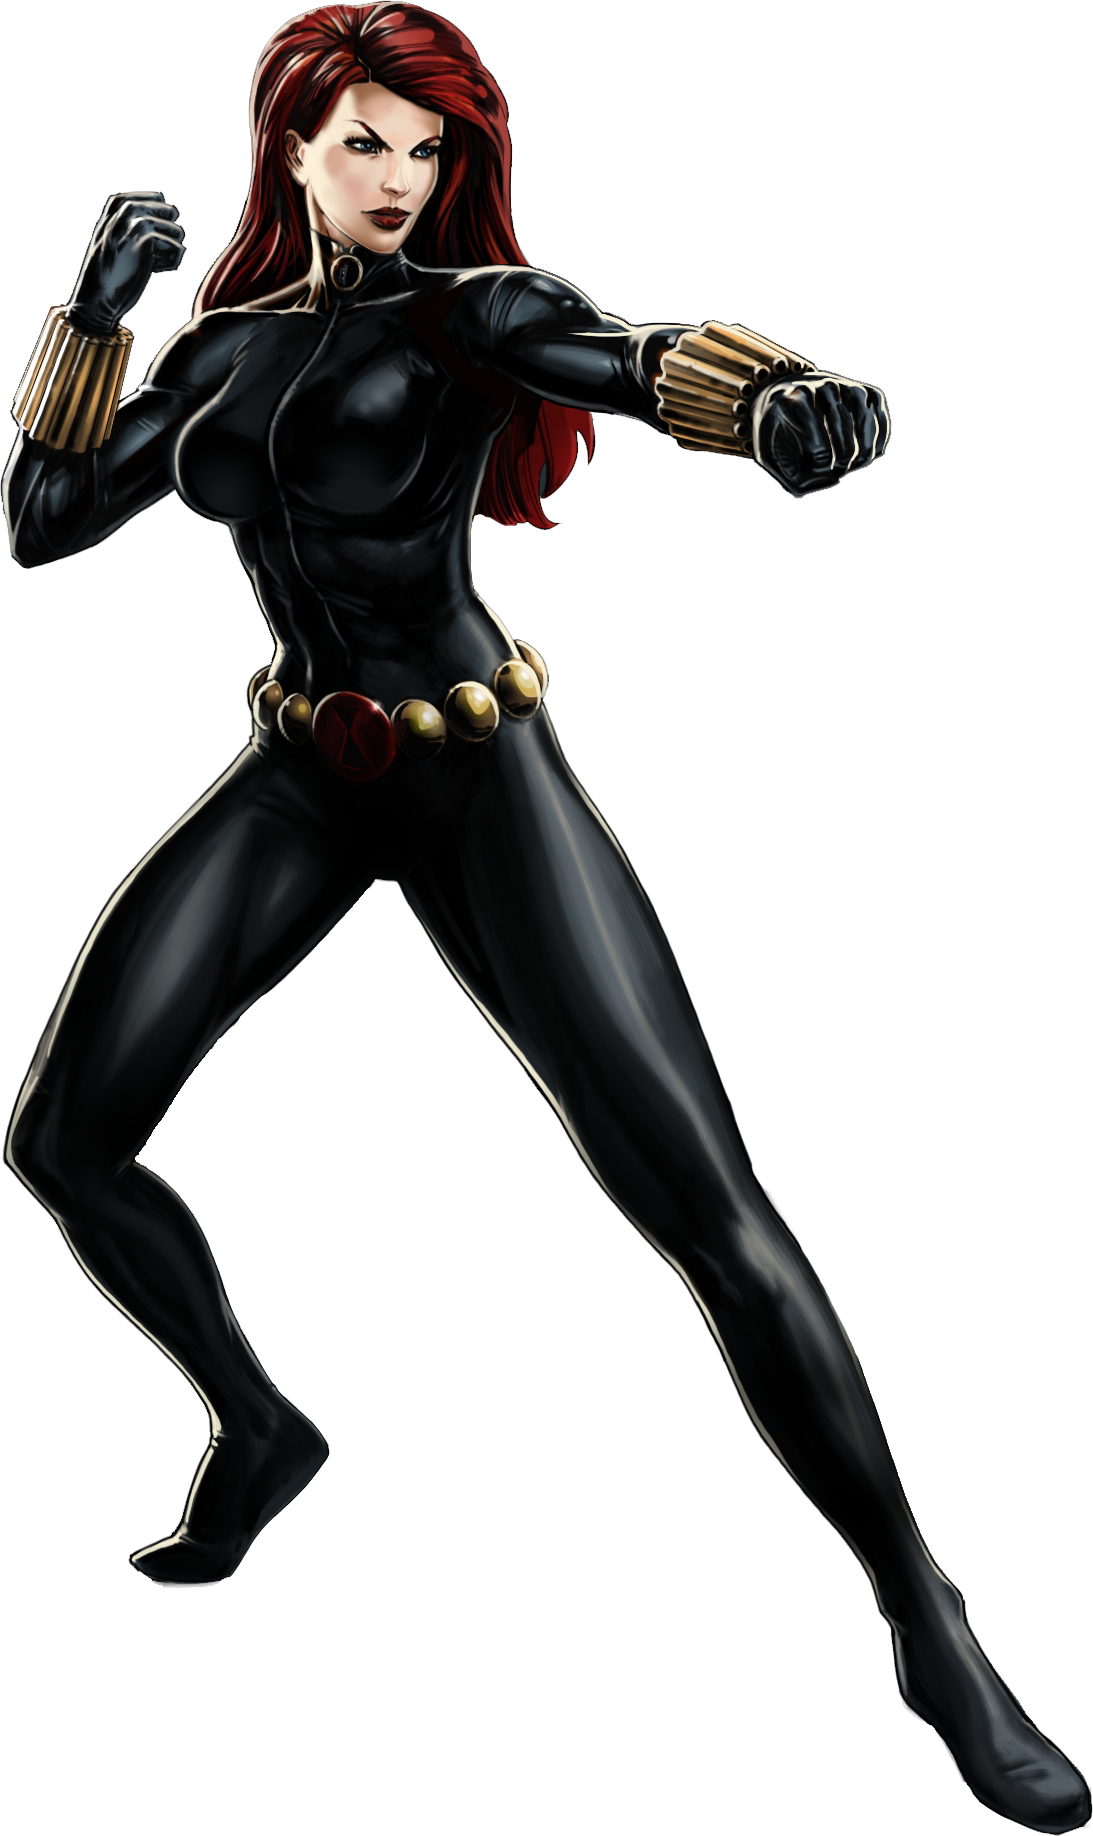 marvel black widow logo png